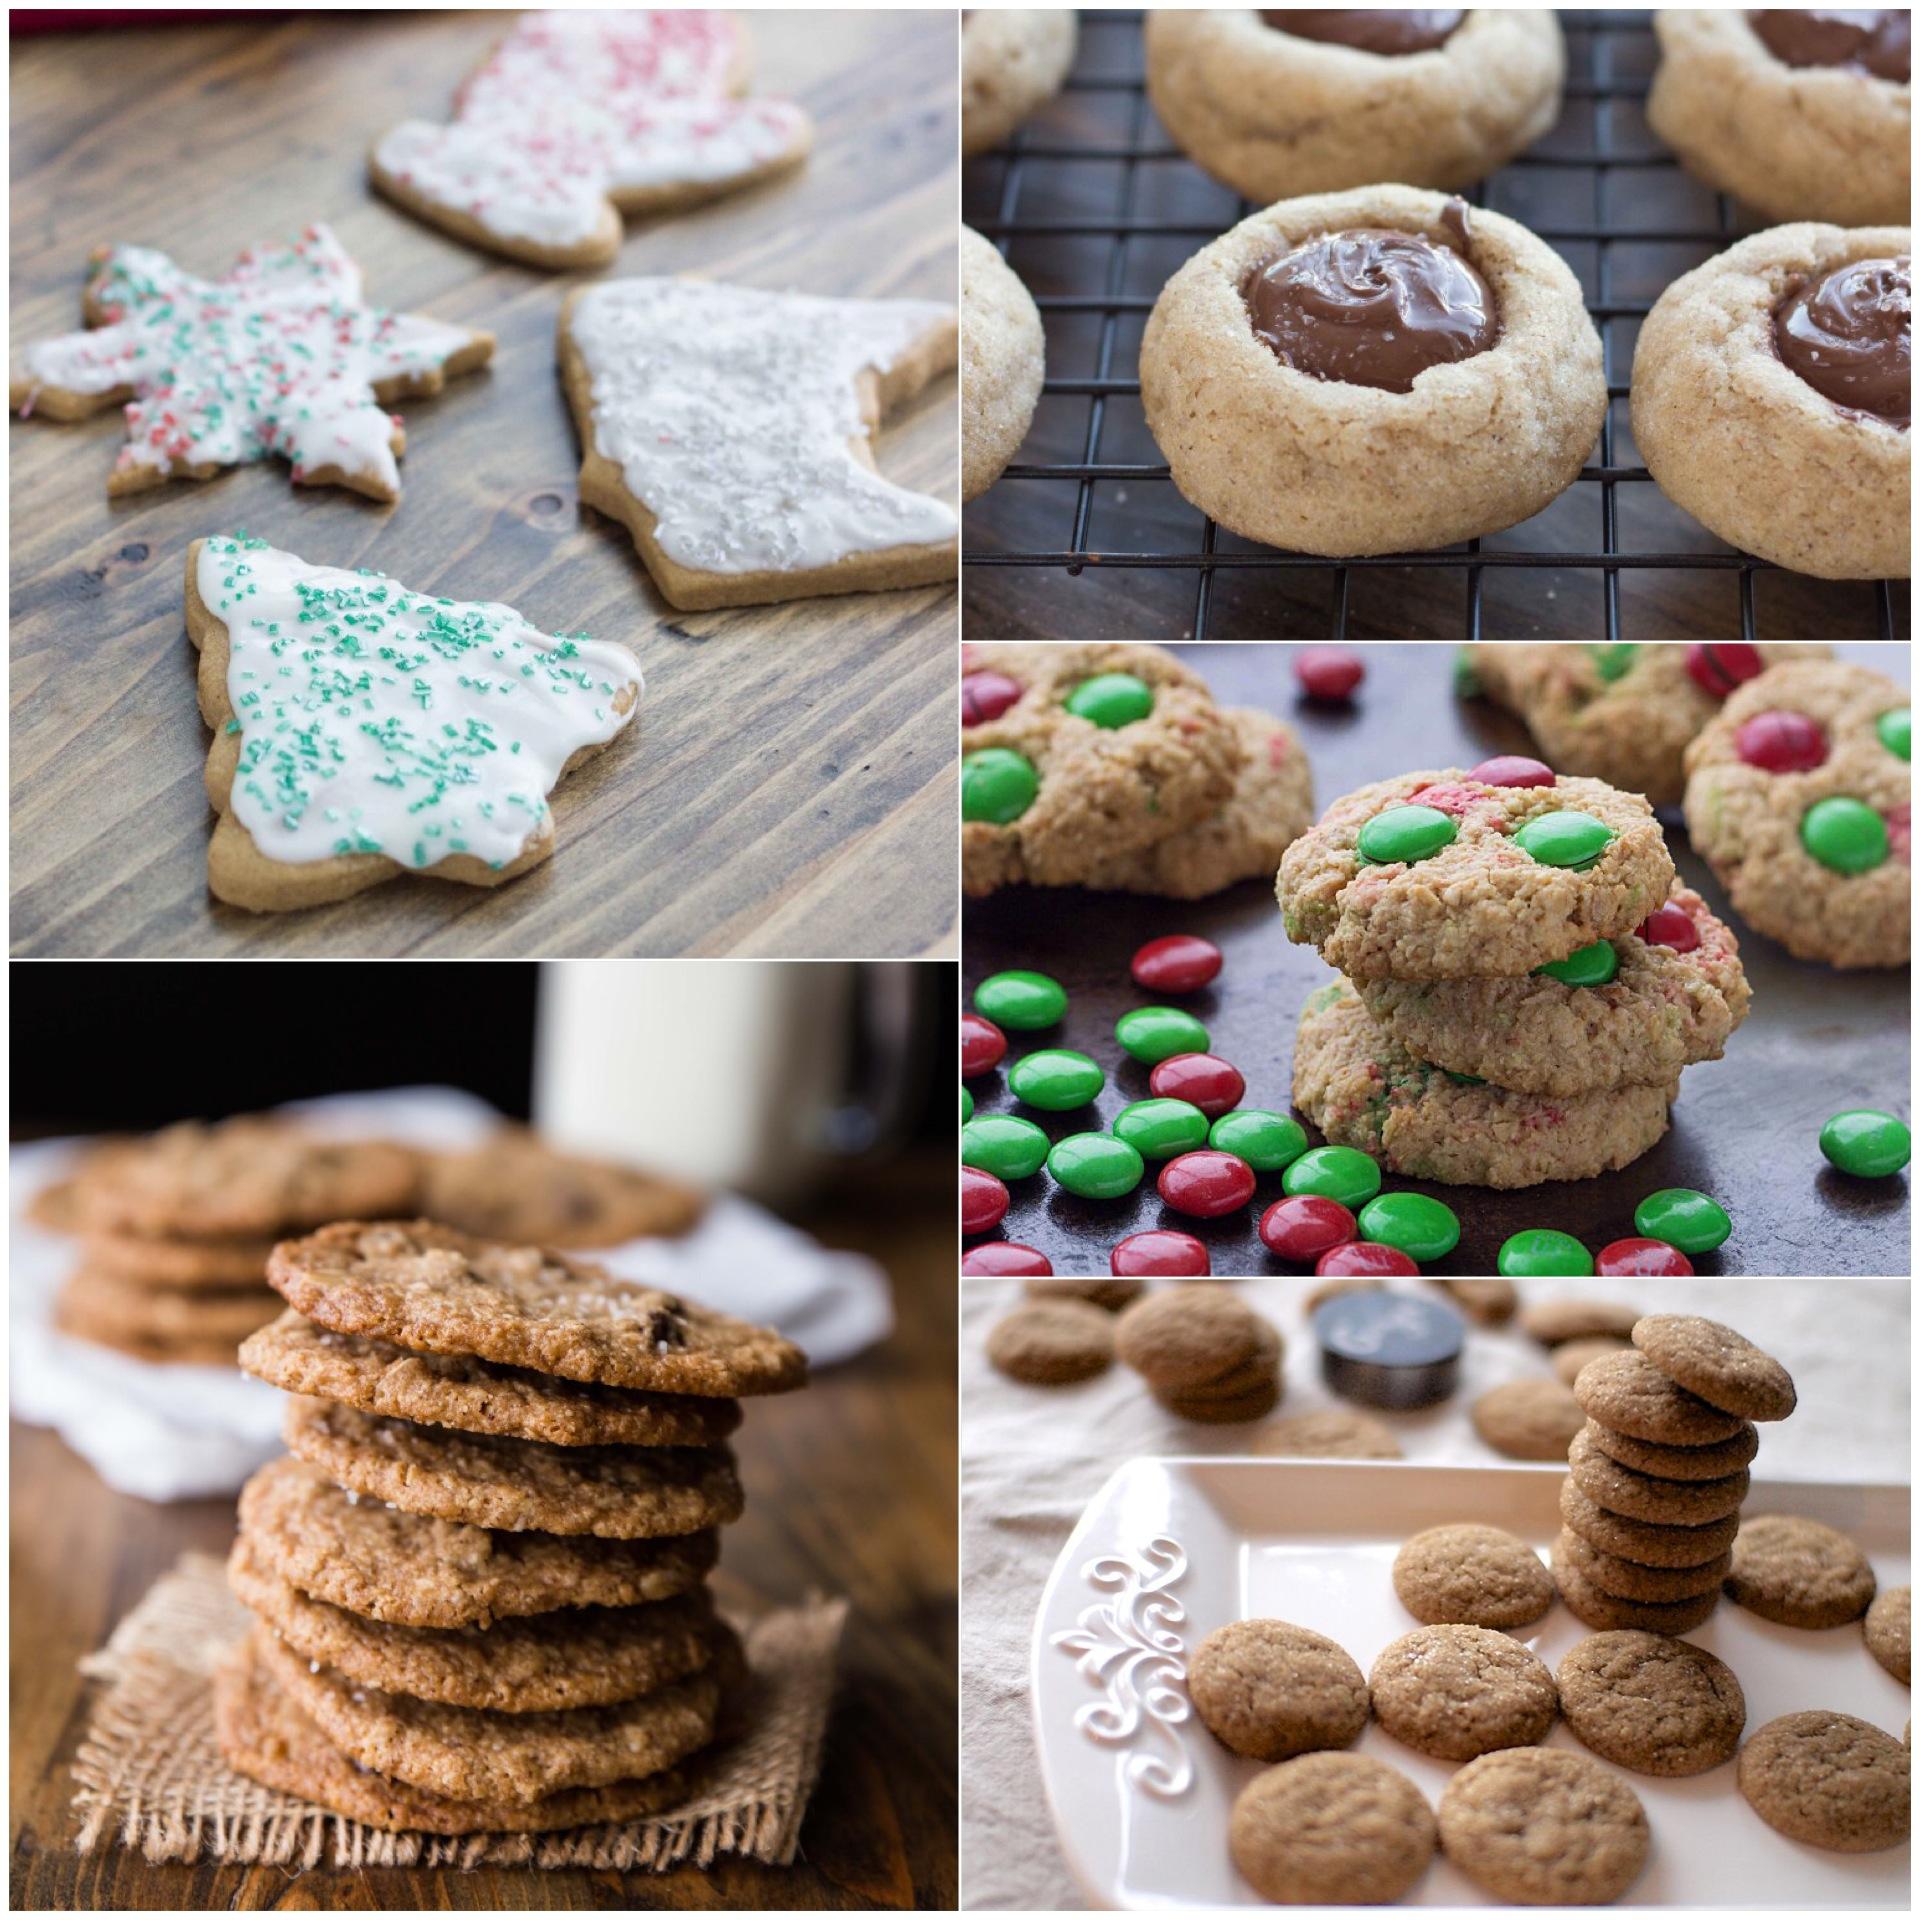 Best 10 Christmas Cookie Recipes: My Top 10 Holiday Cookie Recipes